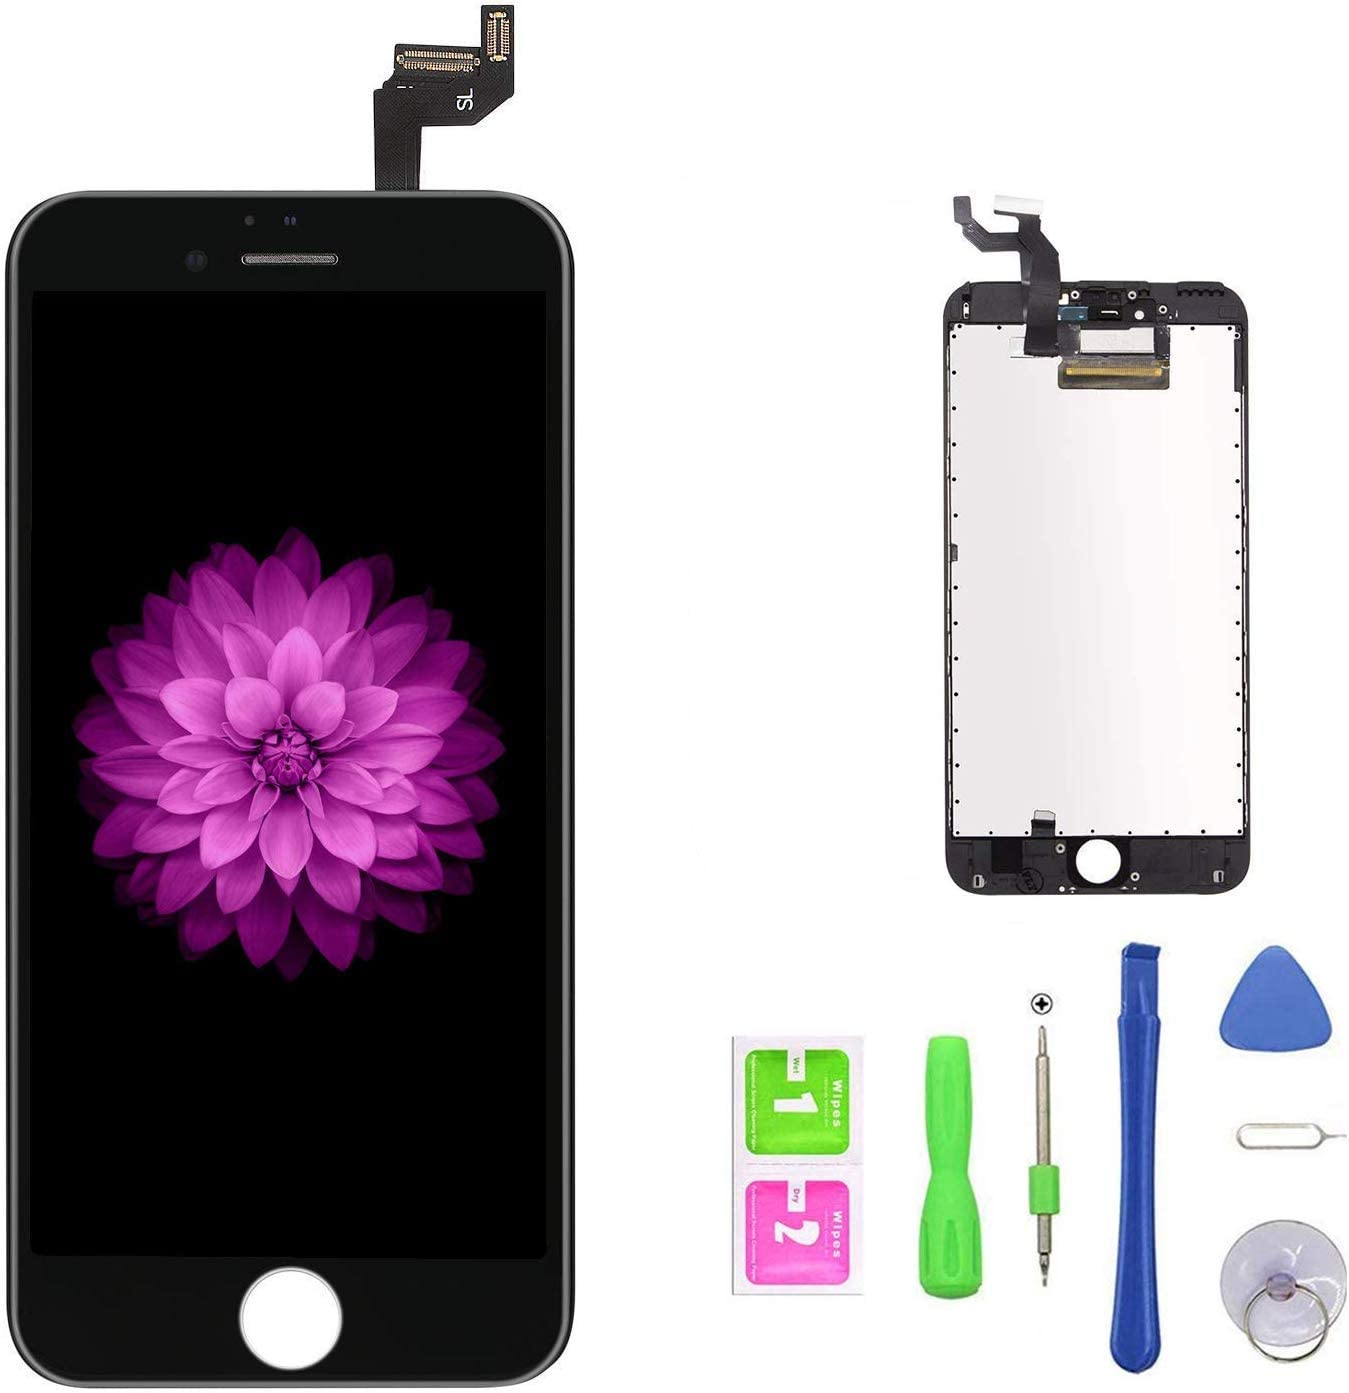 "FFtopu Compatible with iPhone 6s Plus Screen Replacement Black, FFtopu LCD Display 3D Touch Screen Digitizer Replacement Frame Cell Assembly Set with Free Repair Tools(5.5"")"